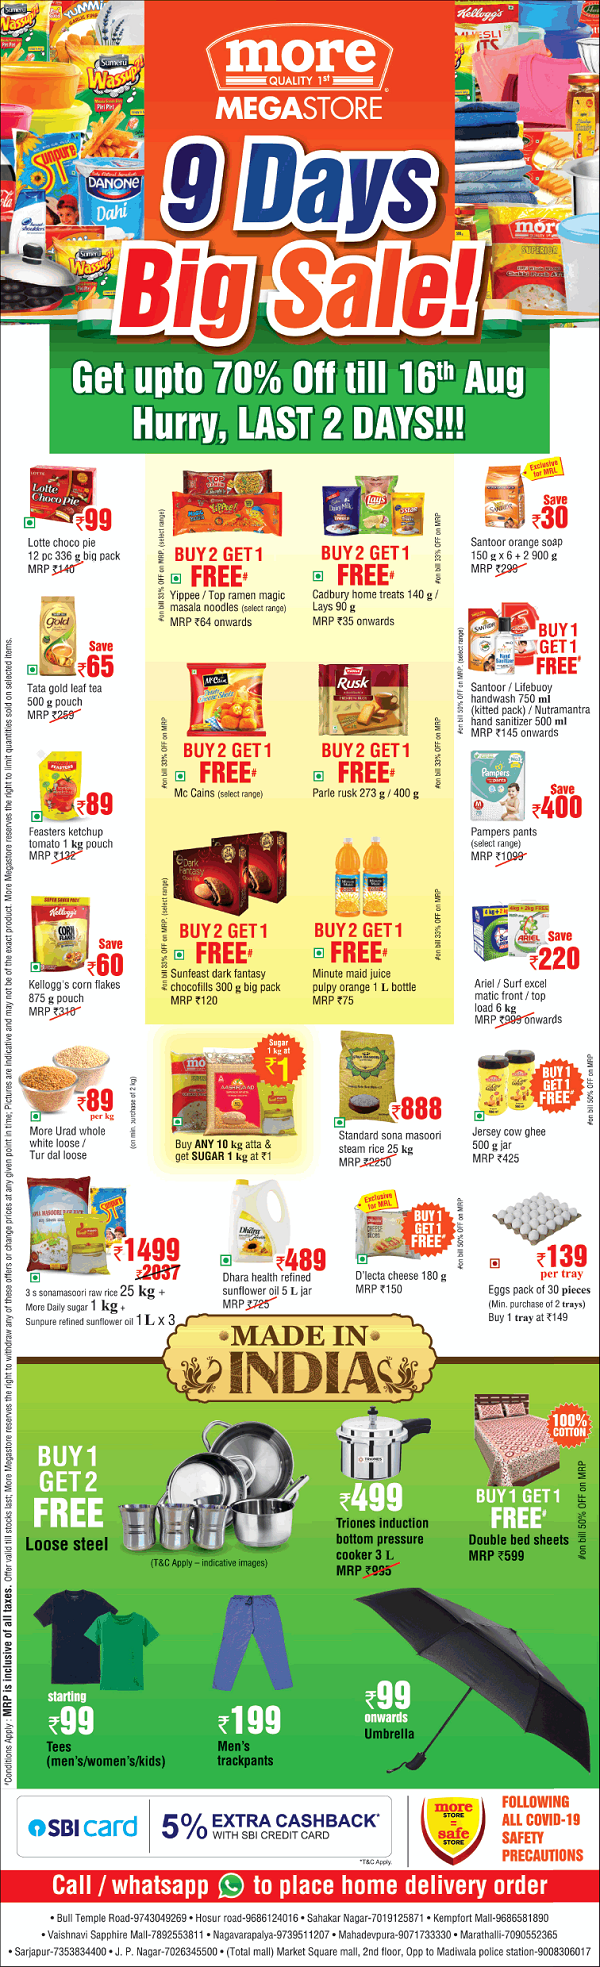 More Mega Store offers India